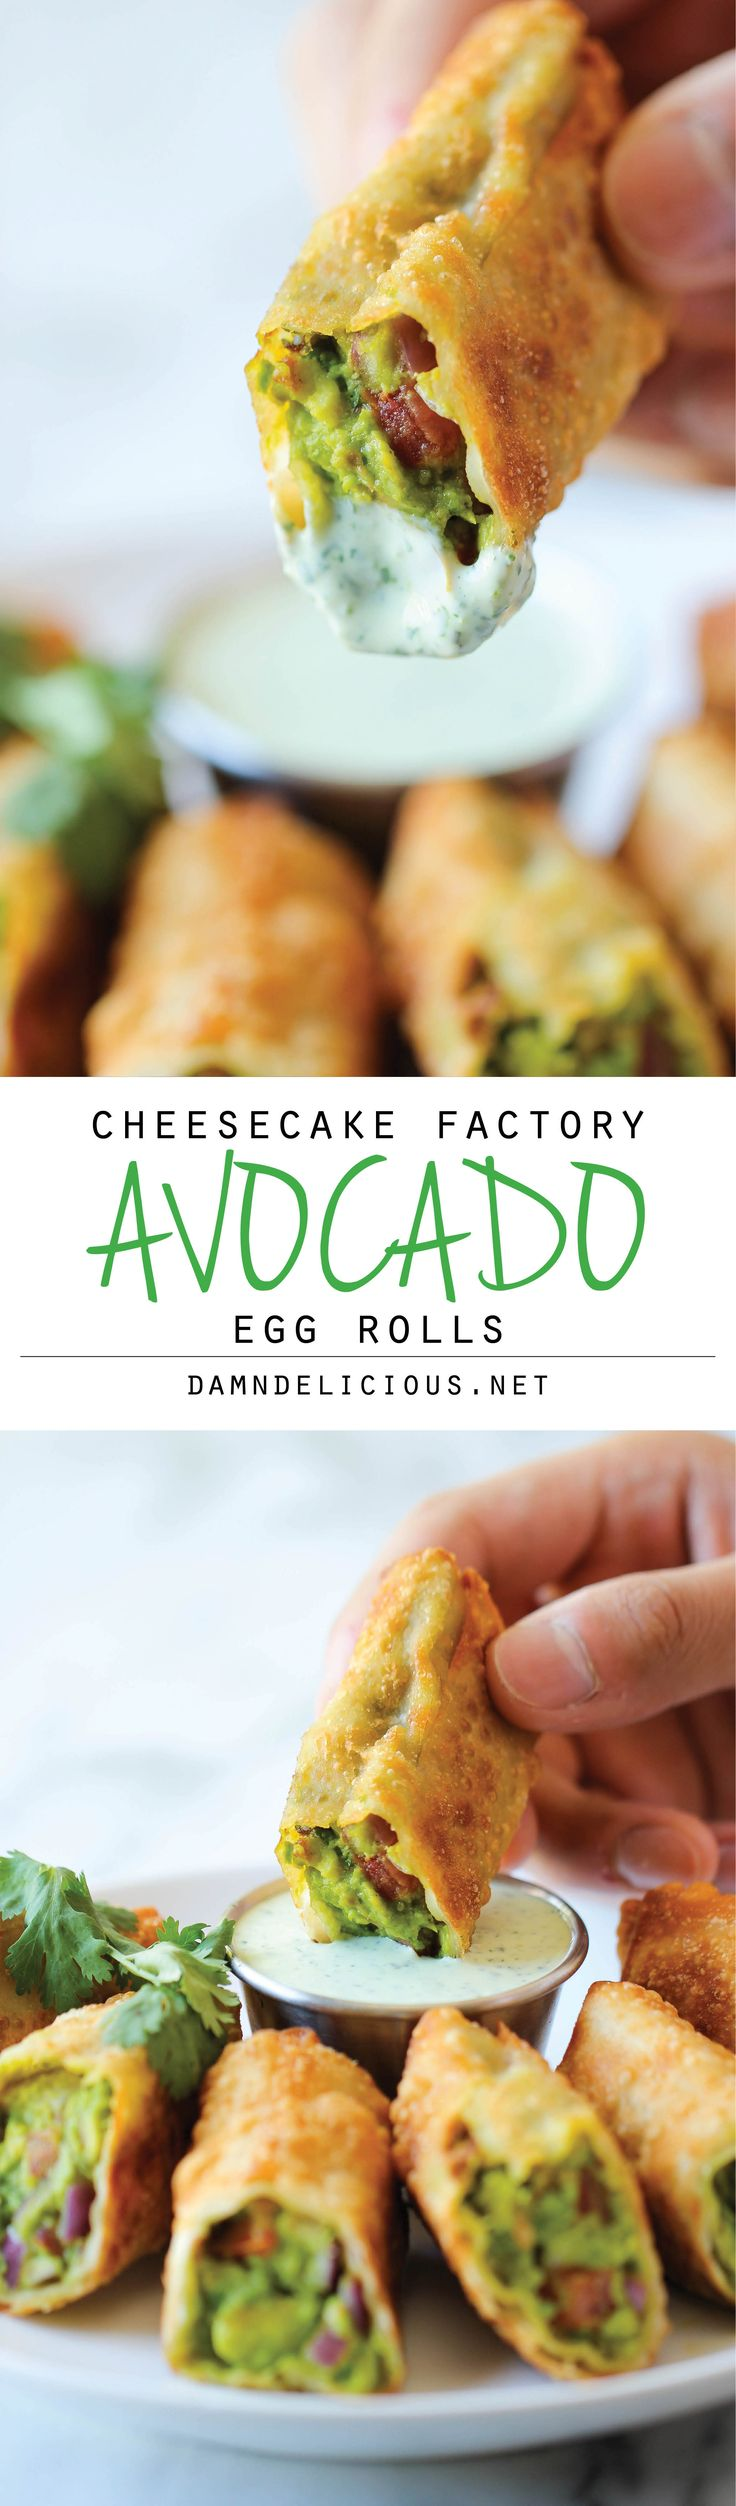 Cheesecake Factory Avocado Egg Rolls Maybe I'm just hungry but damn they look good